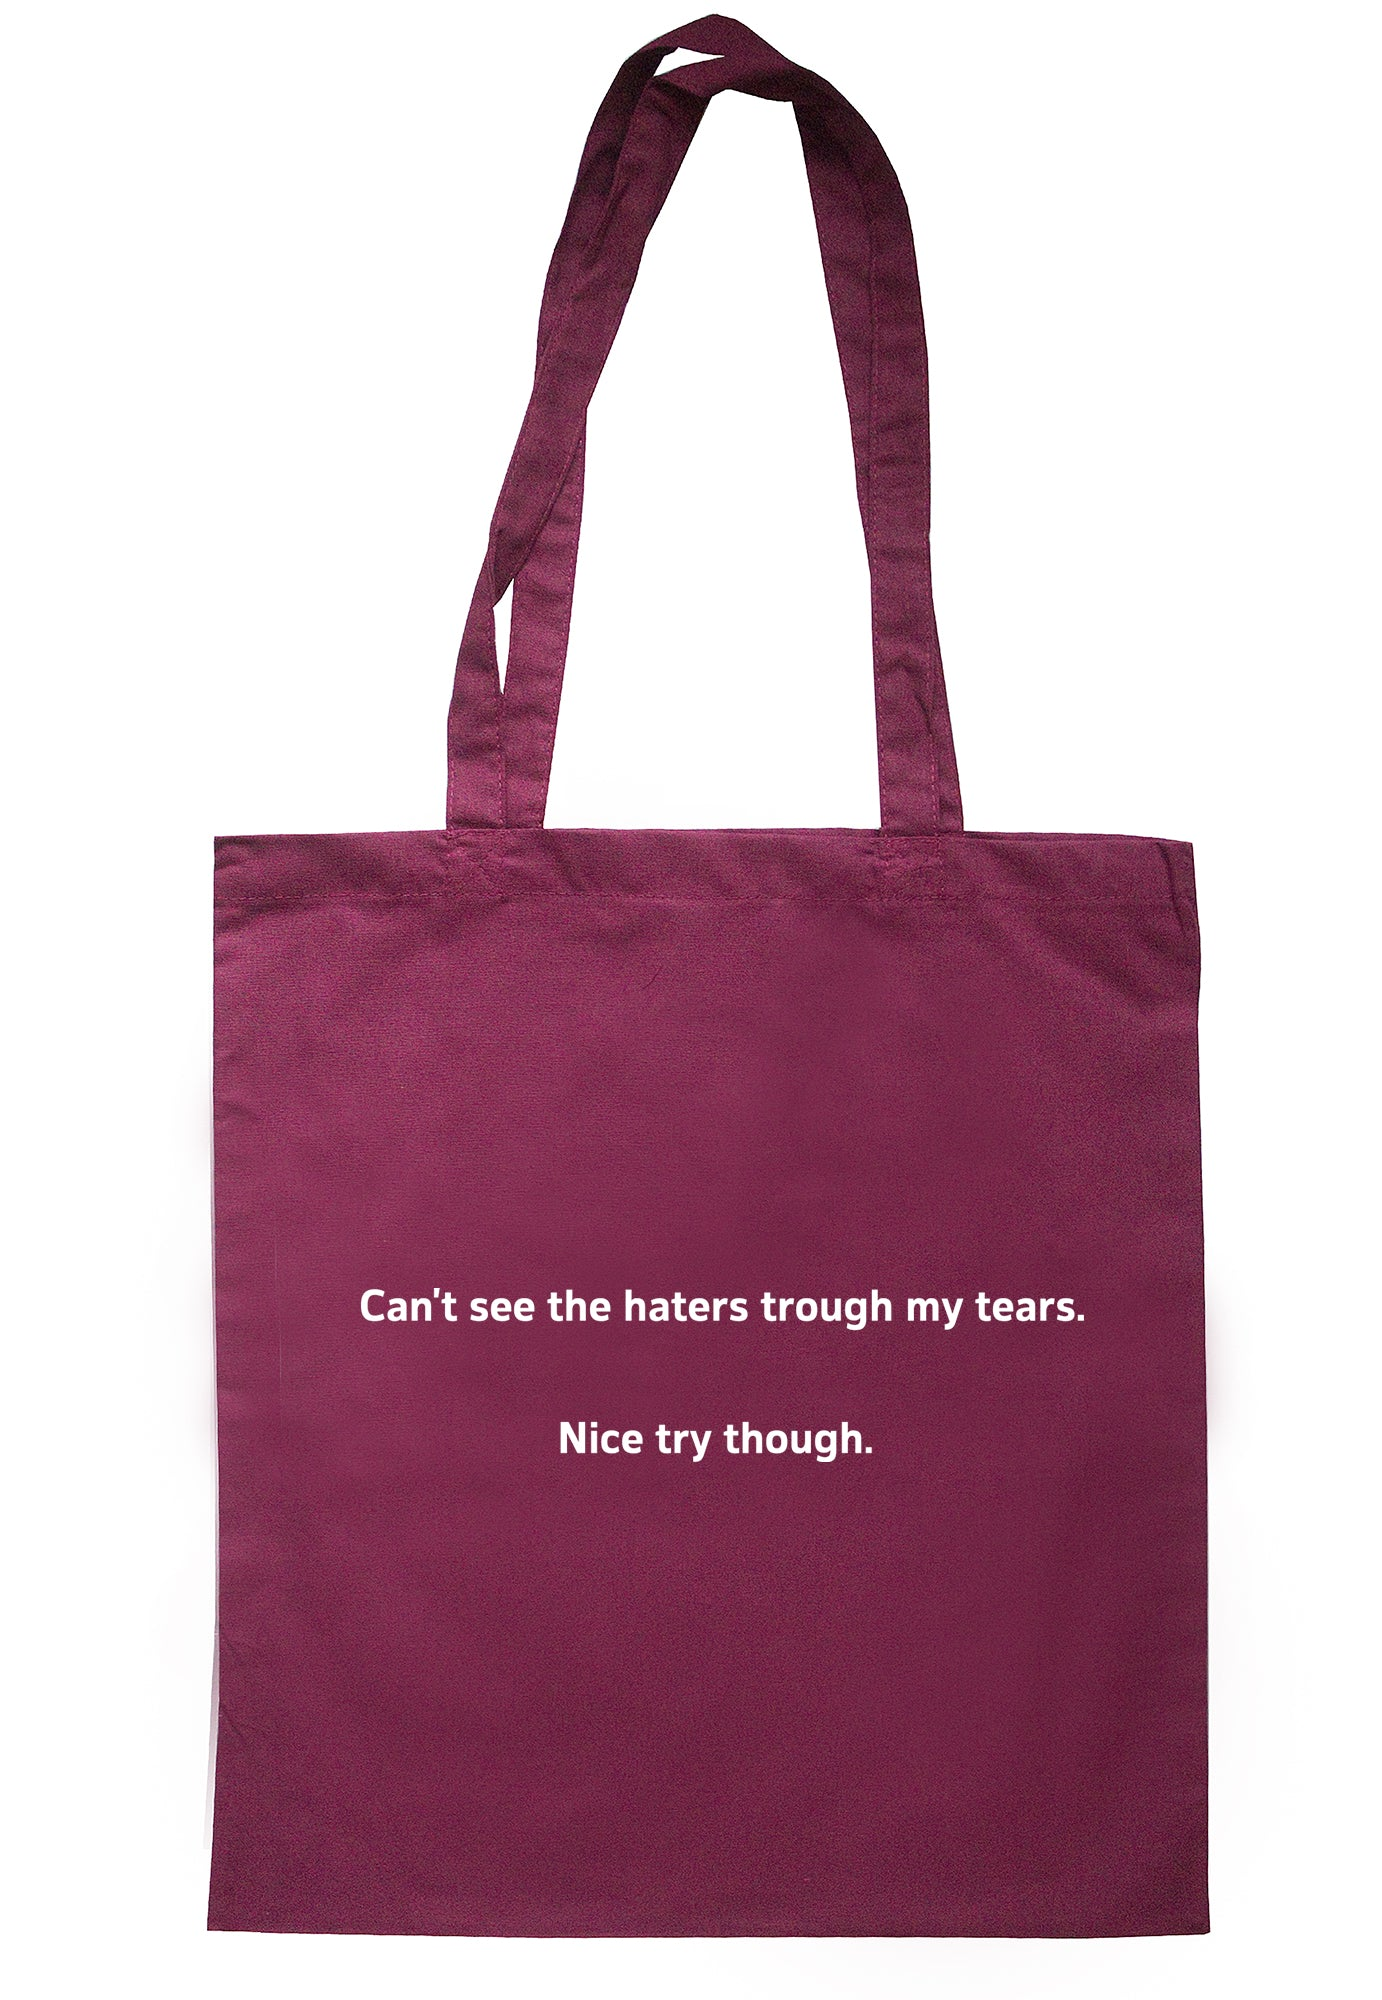 Can't See The Haters Through My Tears. Nice Try Though Tote Bag S1116 - Illustrated Identity Ltd.